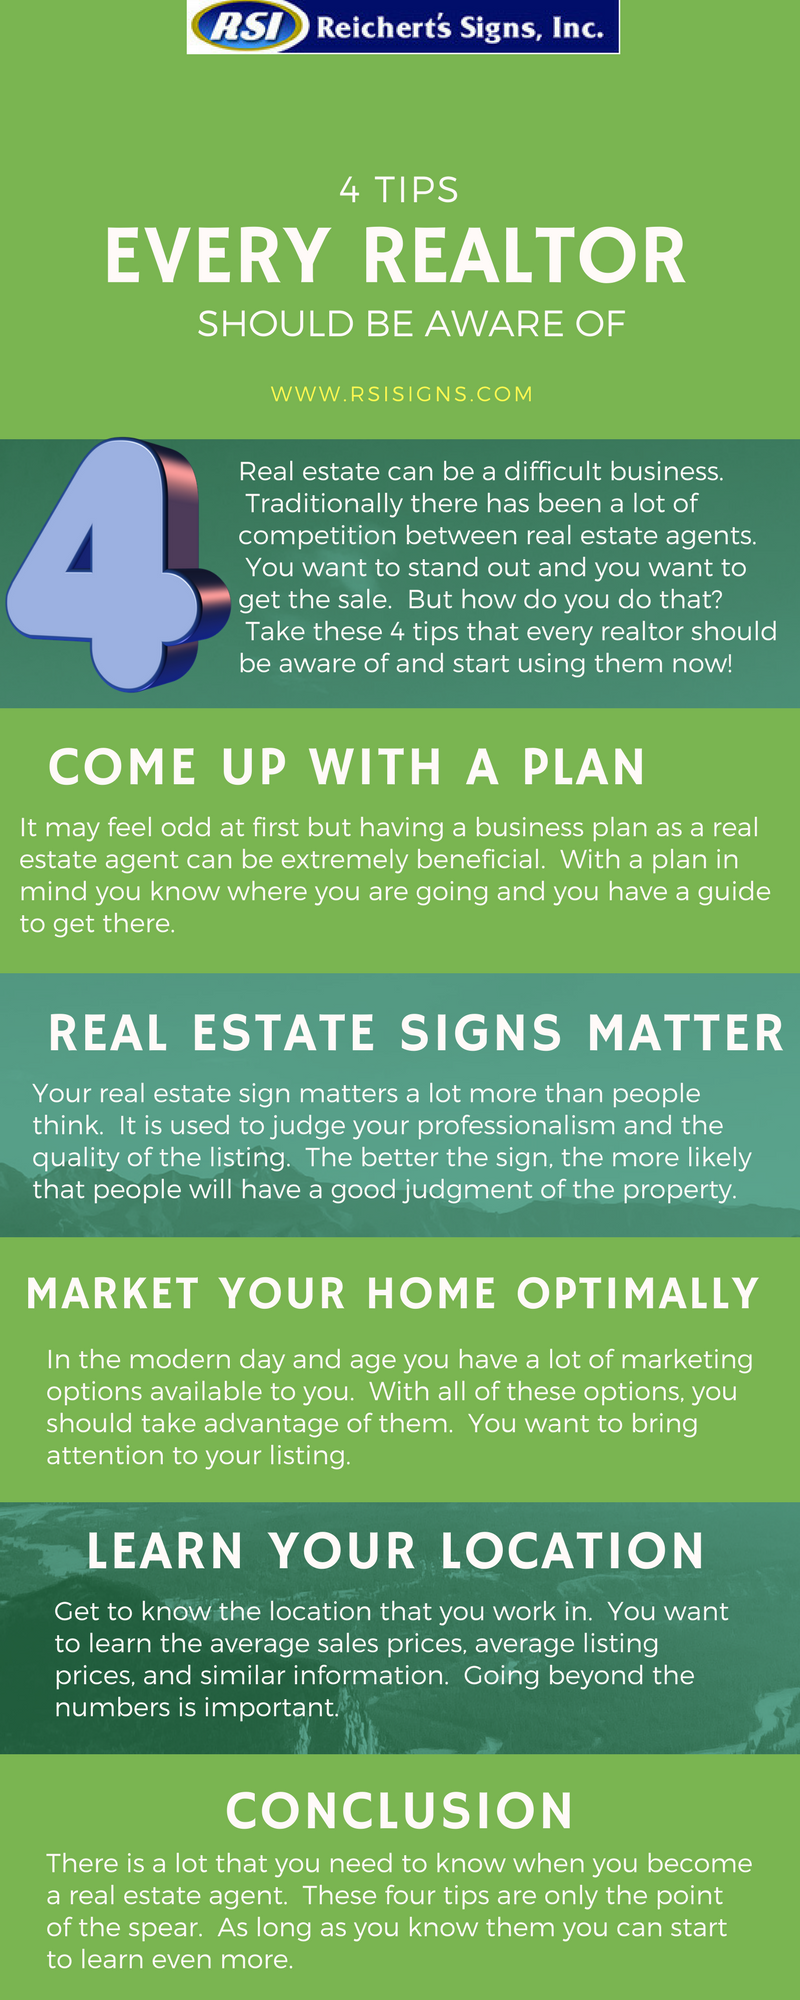 4 Tips Every Realtor Should Be Aware Of